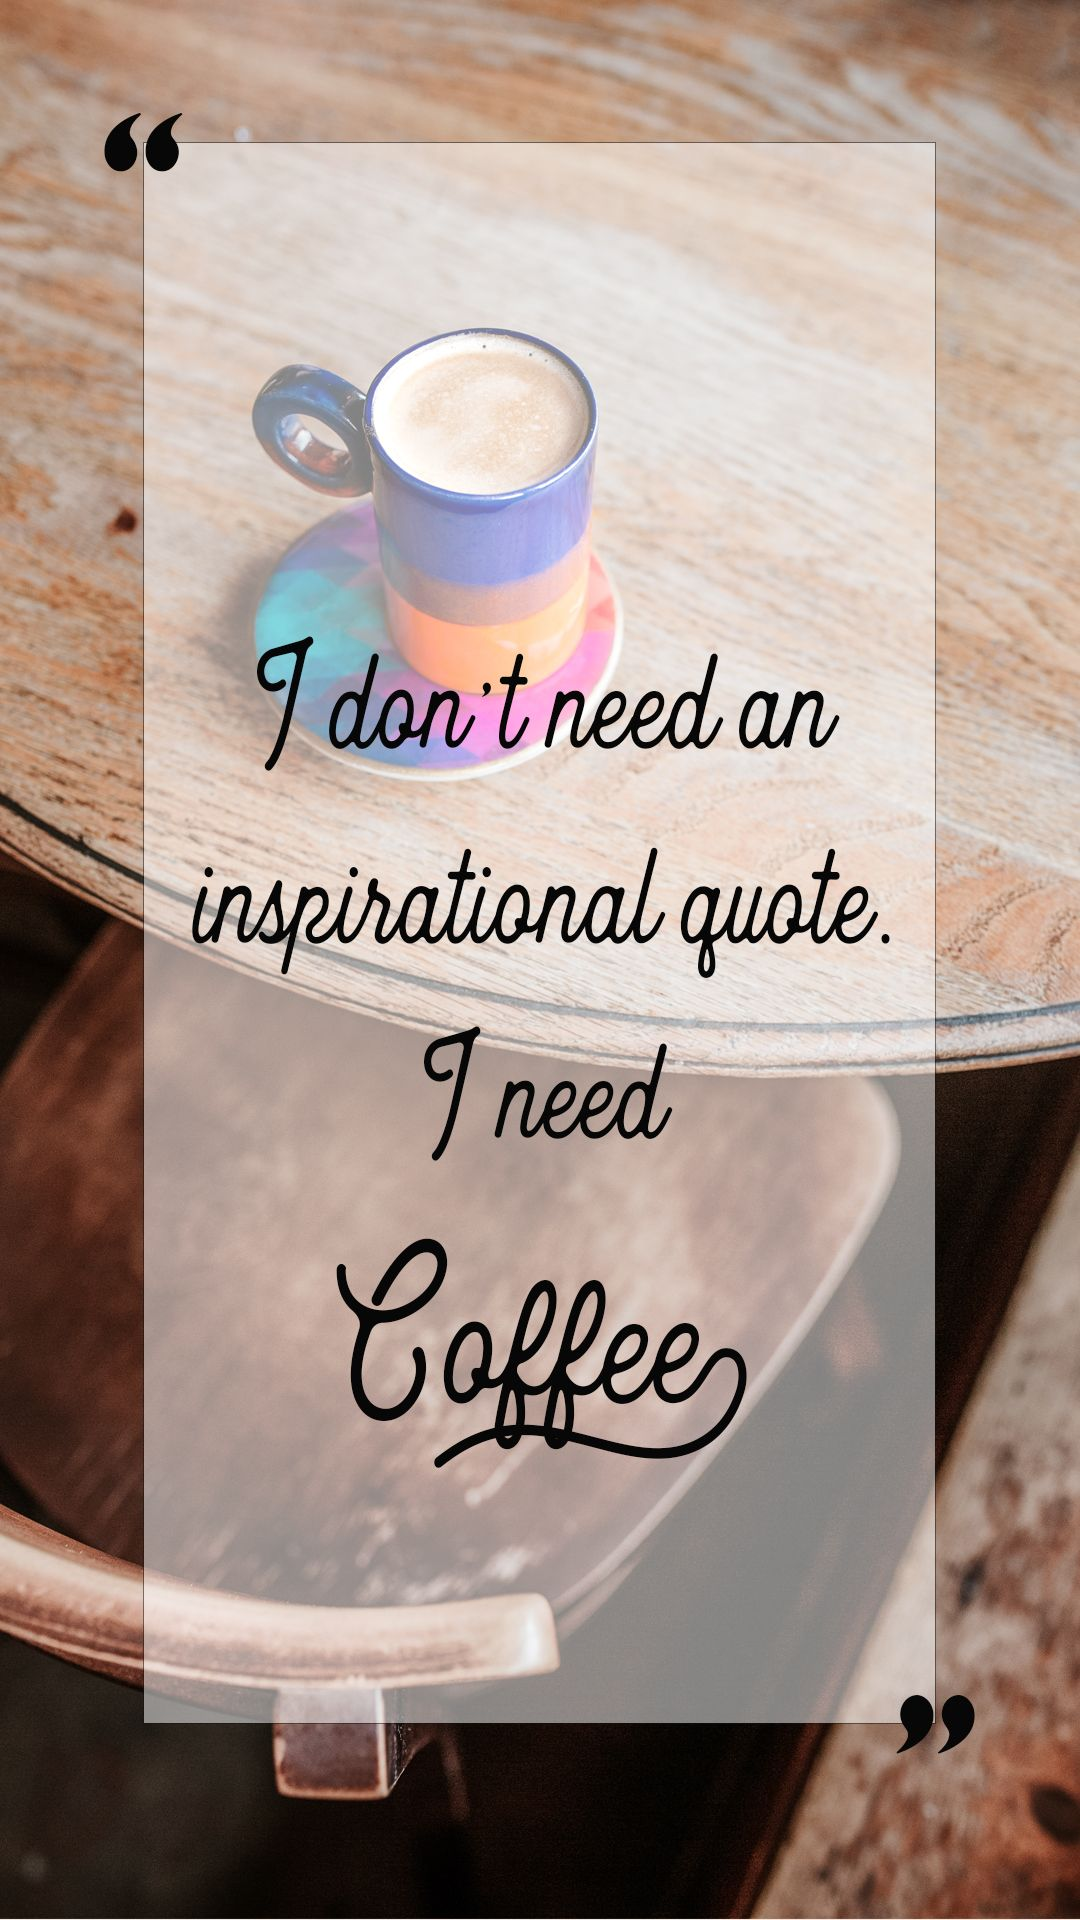 I don't need an inspirational quote, I need coffee, coffee